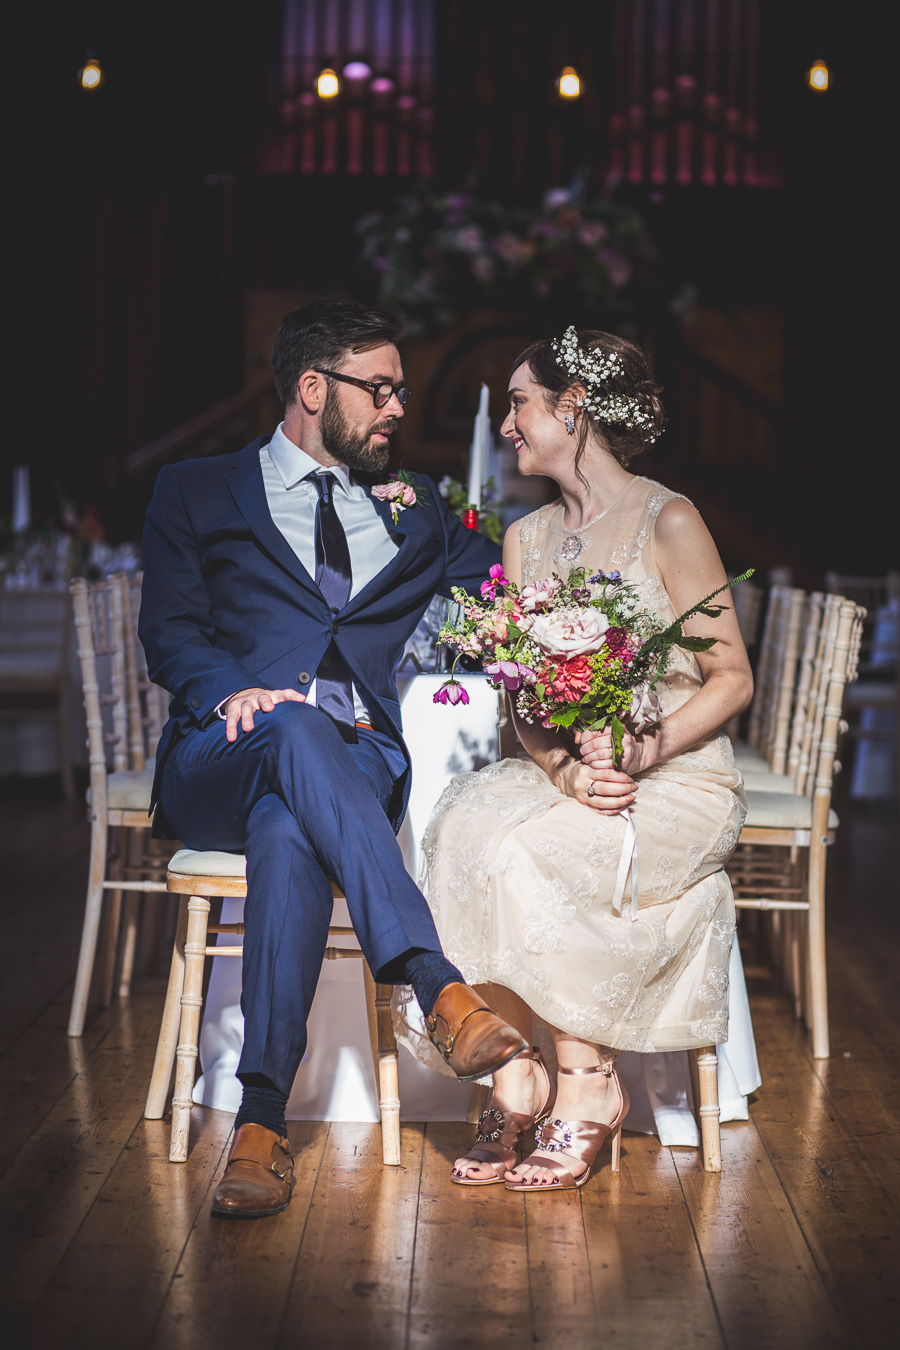 Eclectic, individual and timeless wedding styling at Hackney Round Chapel with images by Sam Taylor Photography (22)